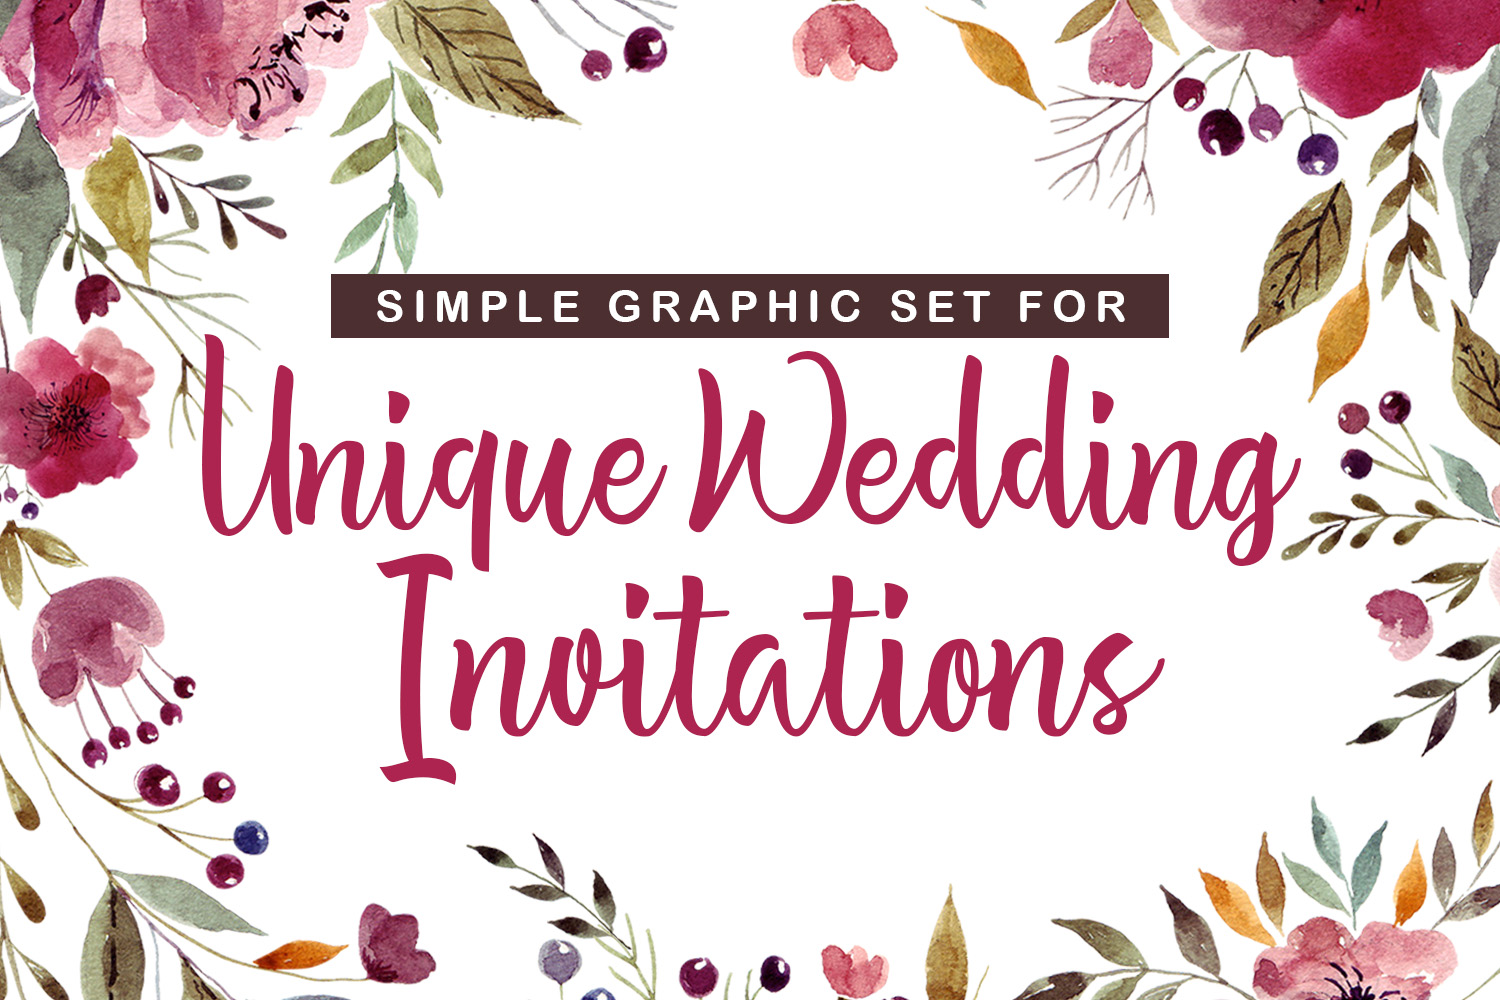 Simple Graphic Sets for Unique Wedding Invitations